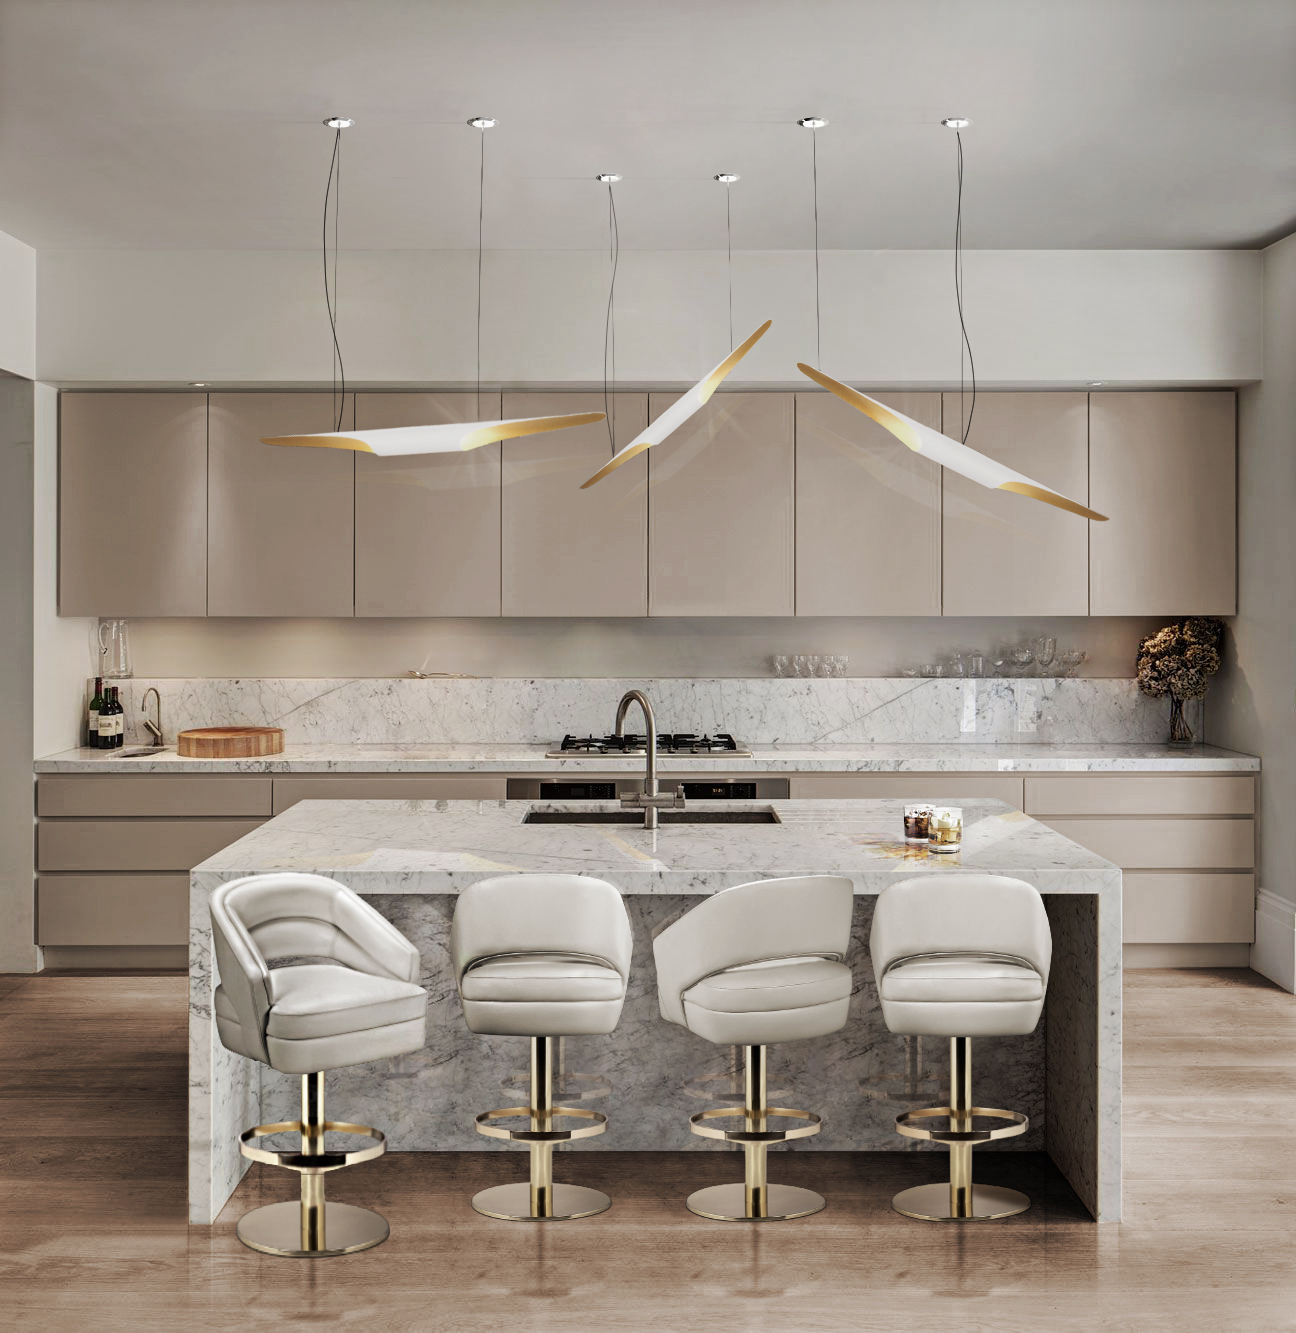 Beata Heuman – Be Inspired By These Interior Design Projects beata heuman Beata Heuman – Be Inspired By These Interior Design Projects coltrane